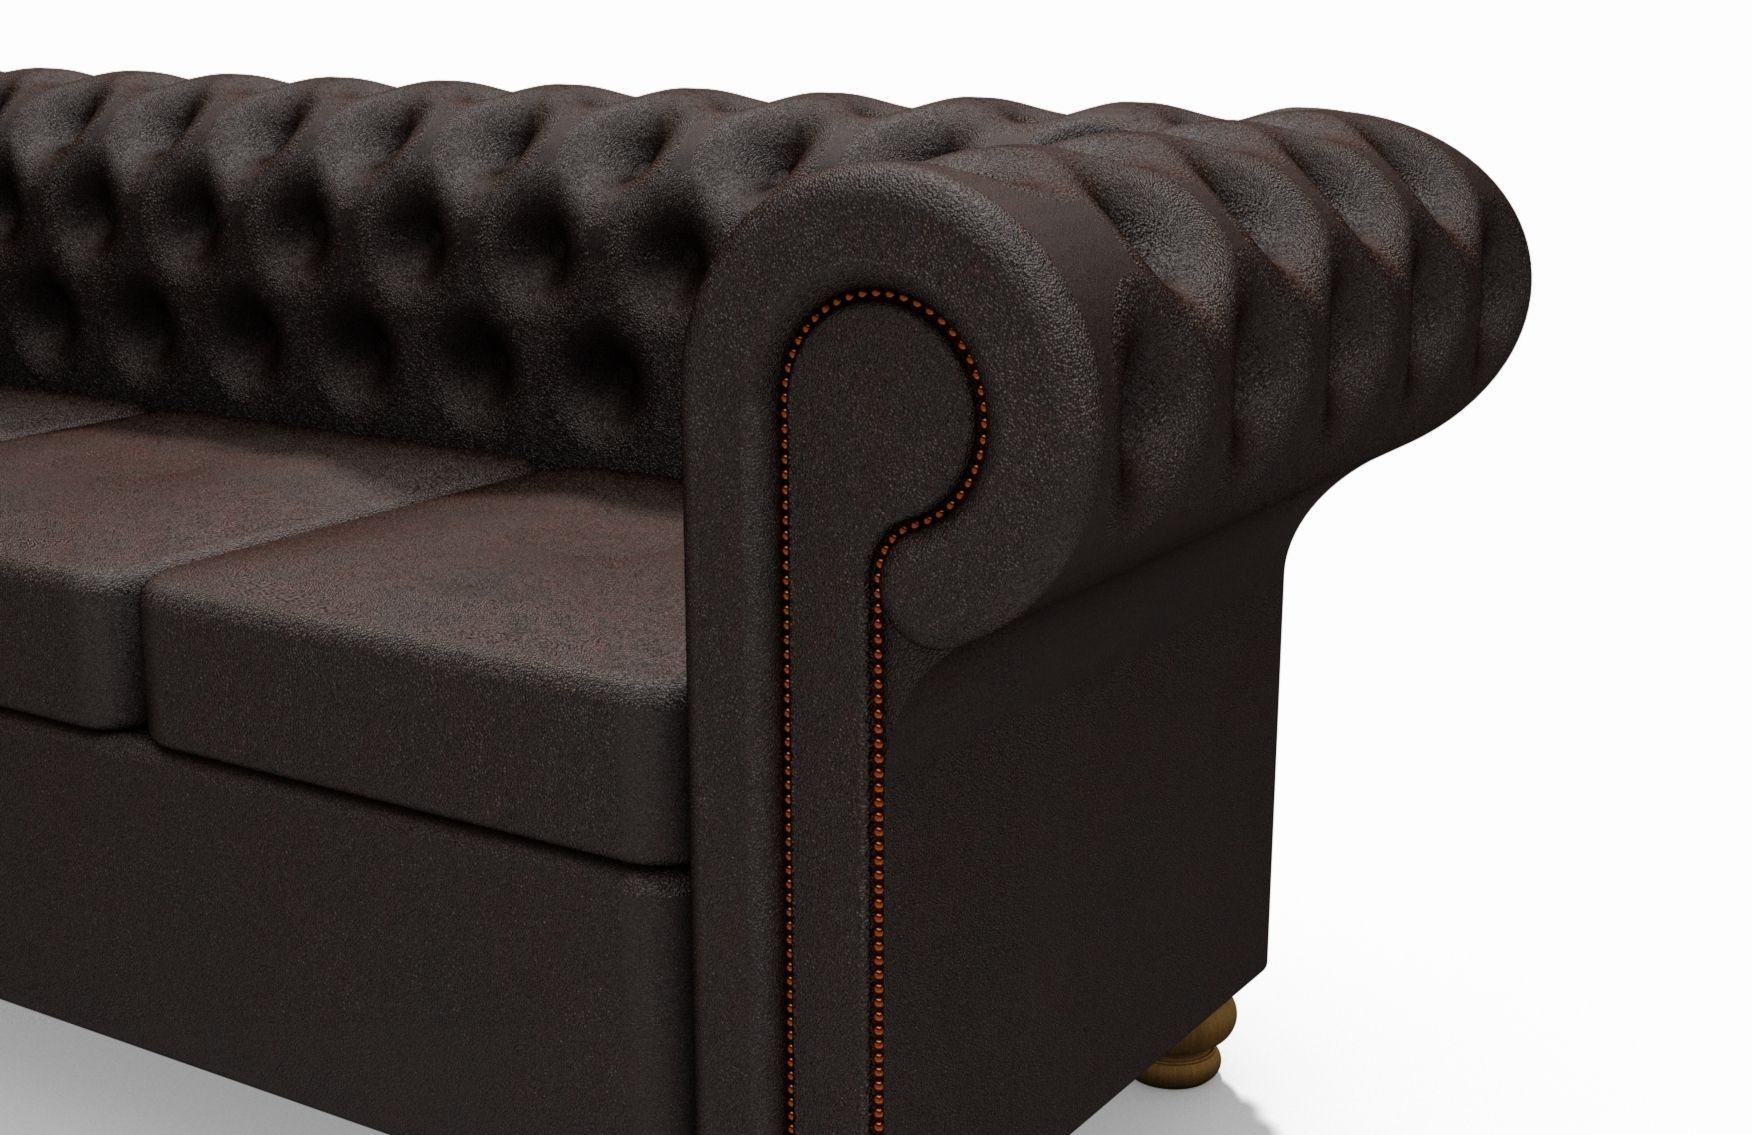 ... Chesterfield Sofa 3d Model Max Obj 3ds Stl Stp 5 ...